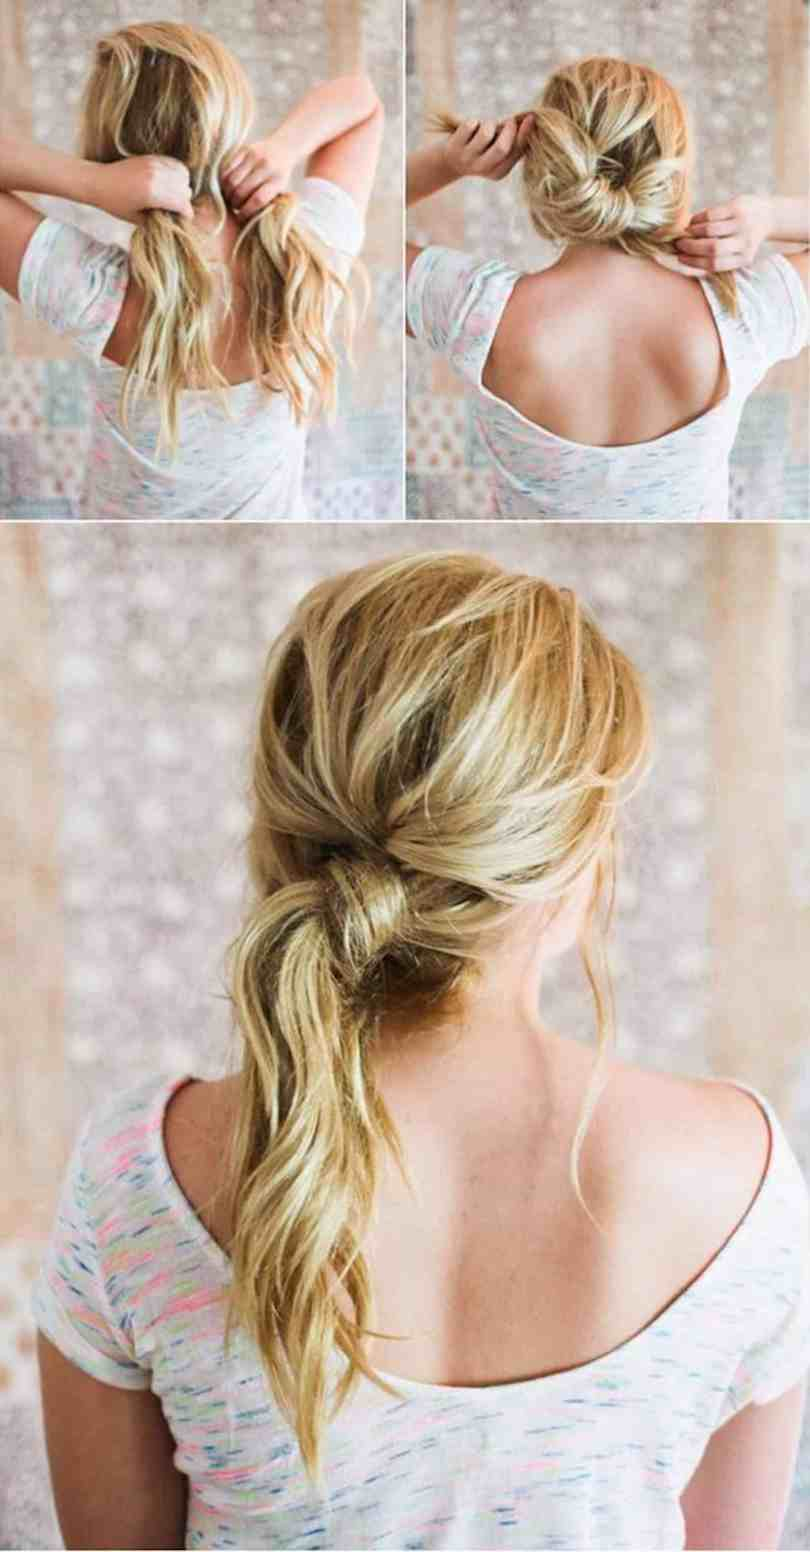 Steal Hearts With These Cute Hairstyles In Under 10 Minutes! 5